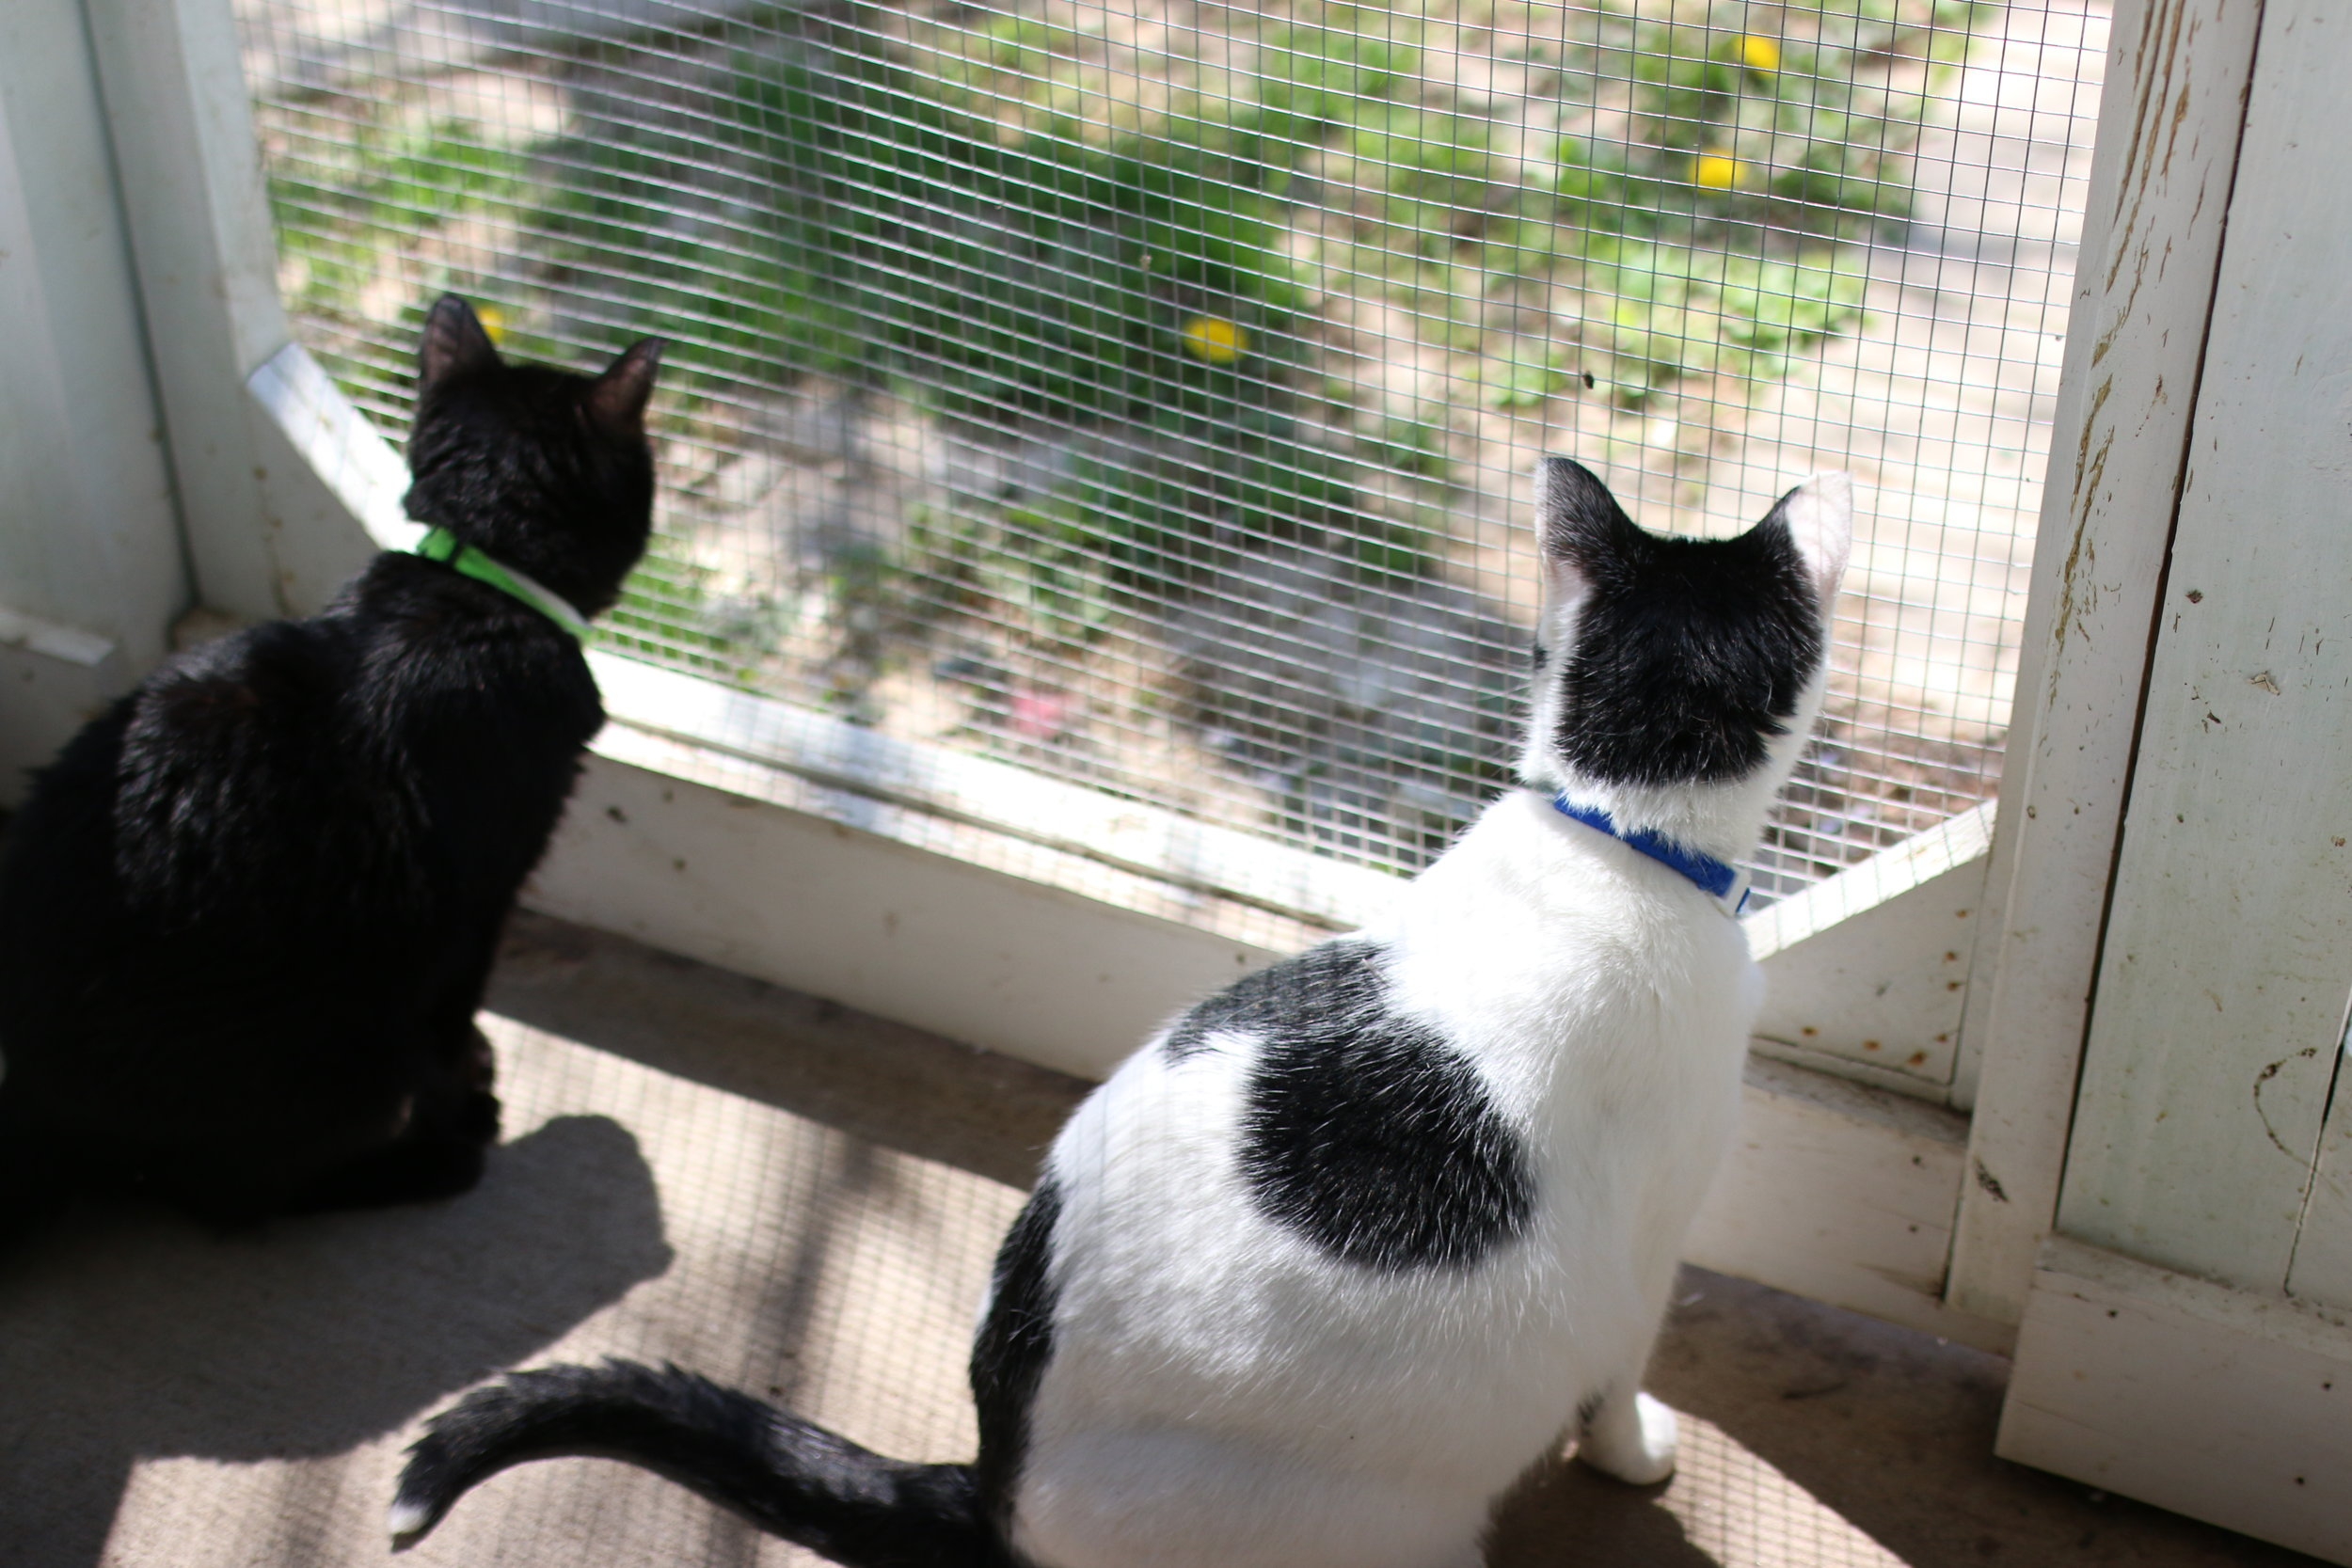 About Us - We are a private animal shelter located in rural Crystal Lake, Illinois. We abide by a no-kill policy, and have many cats and dogs looking for forever homes. Please feel free to browse our website, and be sure to contact us to schedule a visit or for more information.Learn More